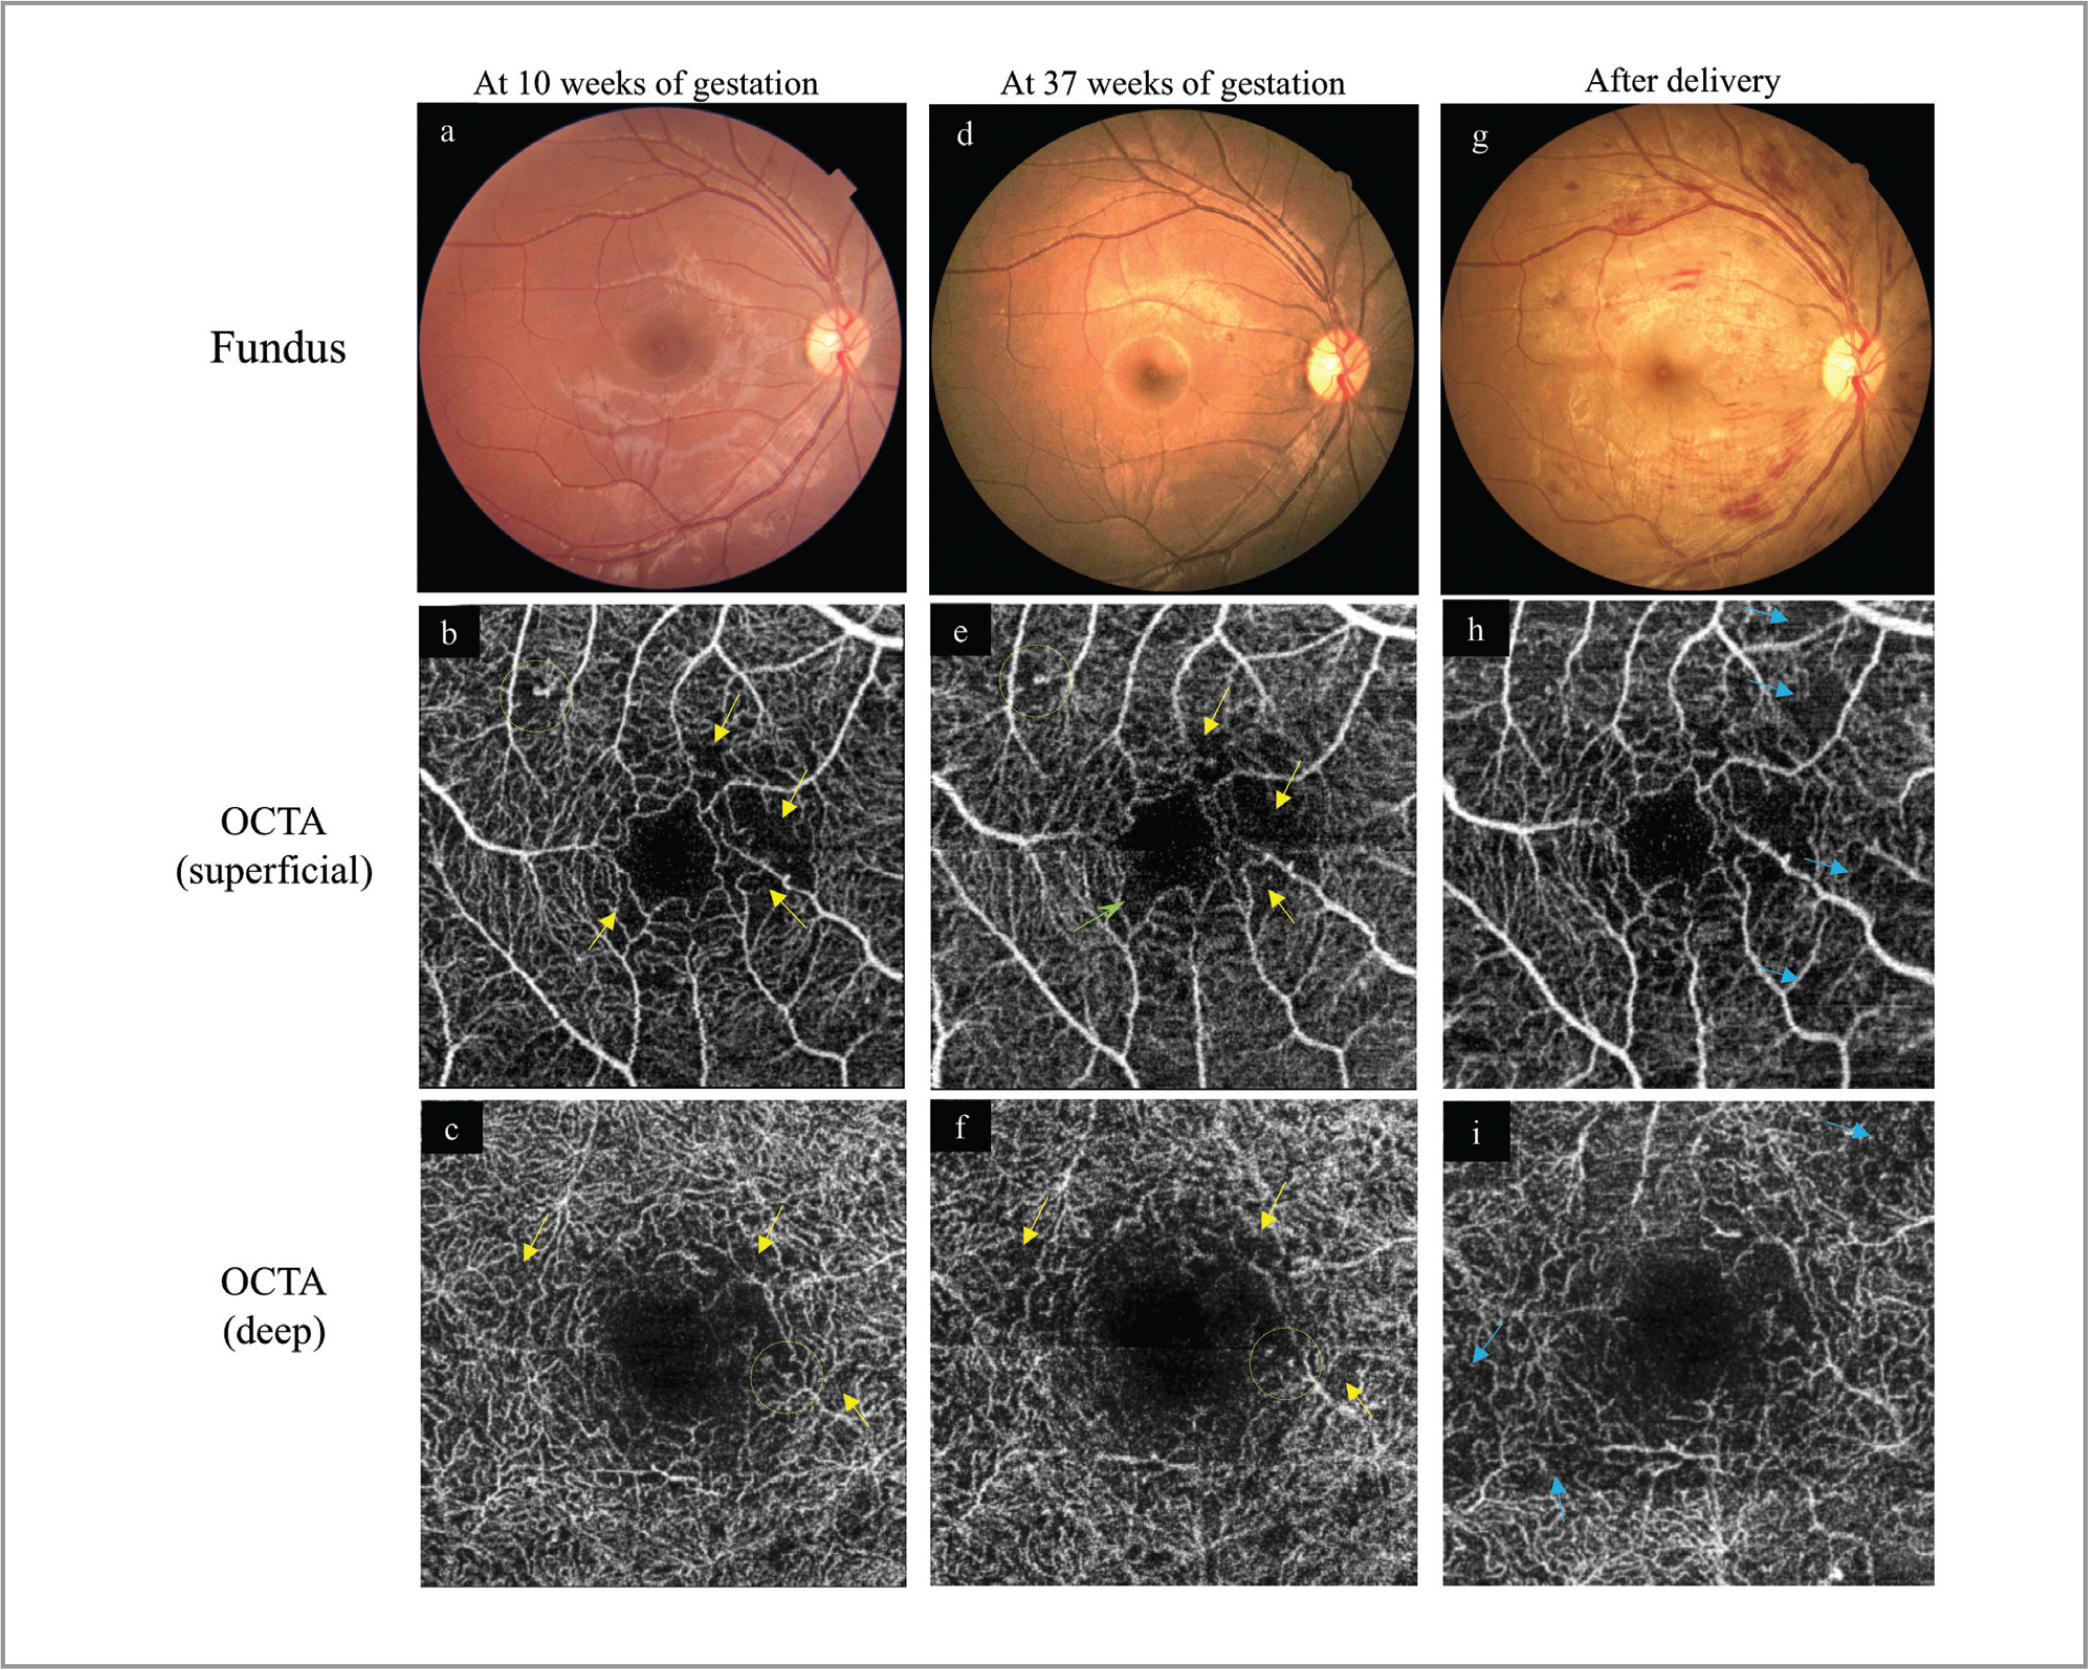 Clinical course of the right eye before and after delivery. Fundus photographs and macular 3 × 3-mm optical coherence tomography angiography (OCTA) images were obtained at 10 weeks of gestation (a–c), 37 weeks of gestation (d–f), and 6 weeks after delivery (g–i). The images in the second row (b, e, h) show the superfical vascular plexus, and those in the third row (c, f, i) show the deep capillary plexus centered on the fovea. Before delivery, microaneurysms (yellow circles) and small capillary nonperfusion (yellow arrows) are seen. There are no apparent differences between 10 weeks (b, c) and 37 weeks of gestation (e, f), except for slight enlargement of the foveal avascular zone (e, green arrow). After delivery, multiple flame-shaped retinal hemorrhages are seen (g), and OCTA shows new areas of decreased flow (blue arrows) in both plexuses (h, i).